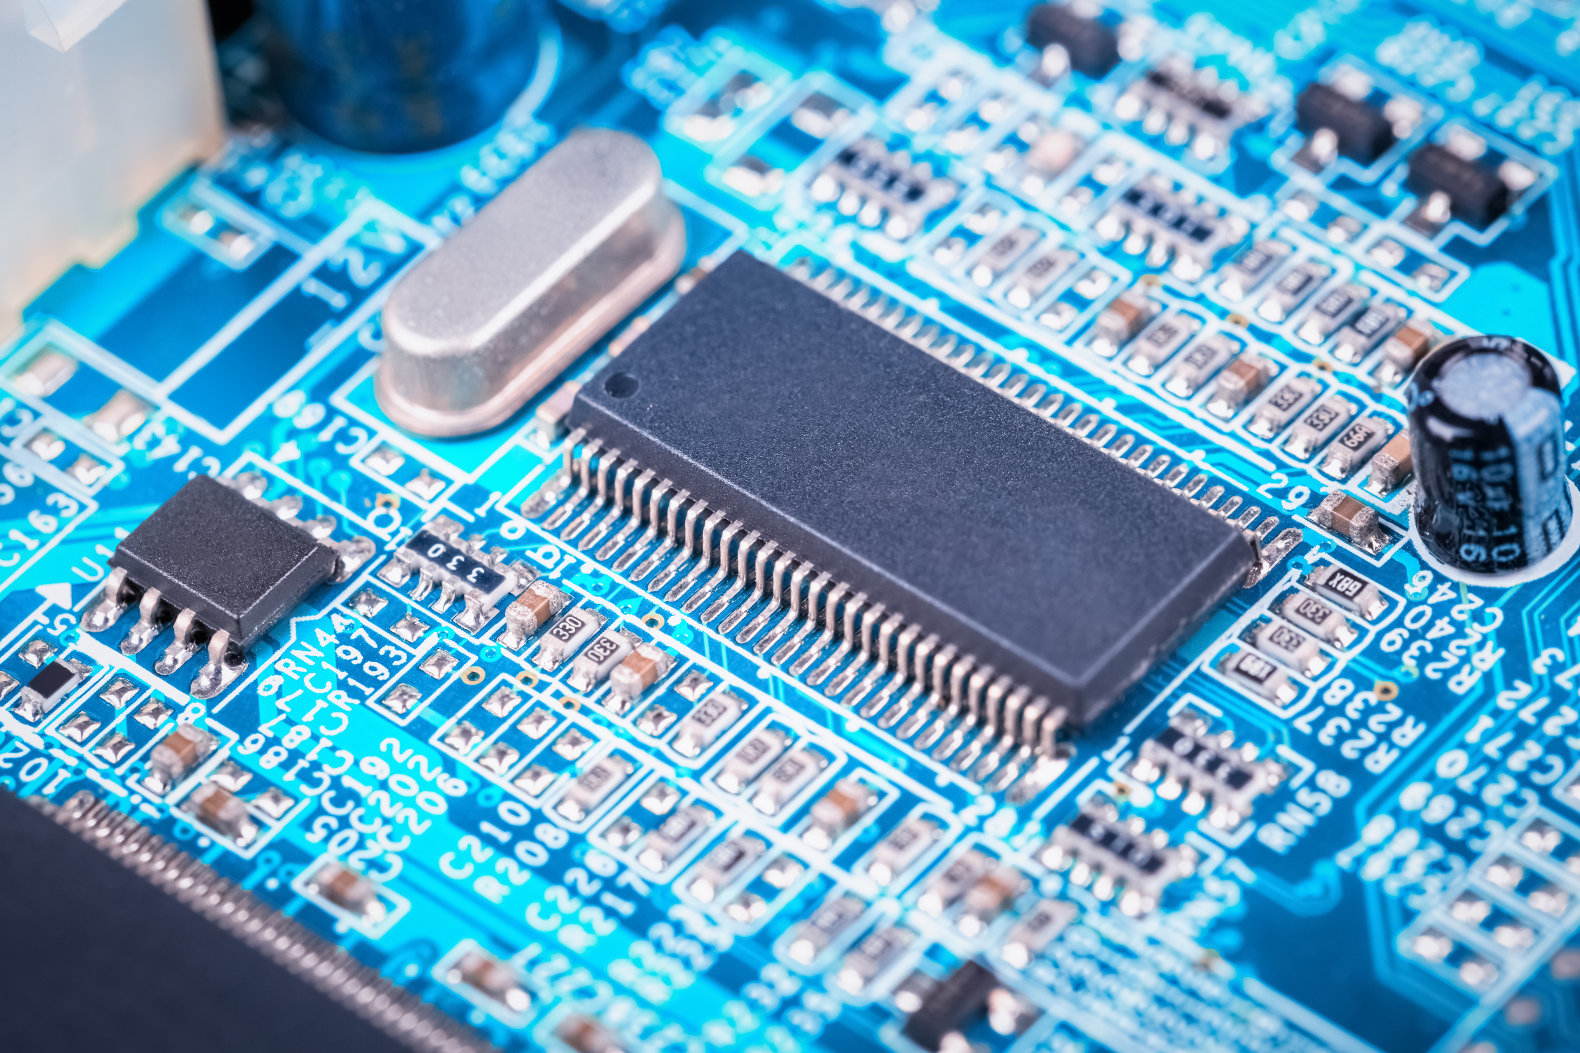 Columbia scientists create first-ever computer chip integrated with biology on a molecular level